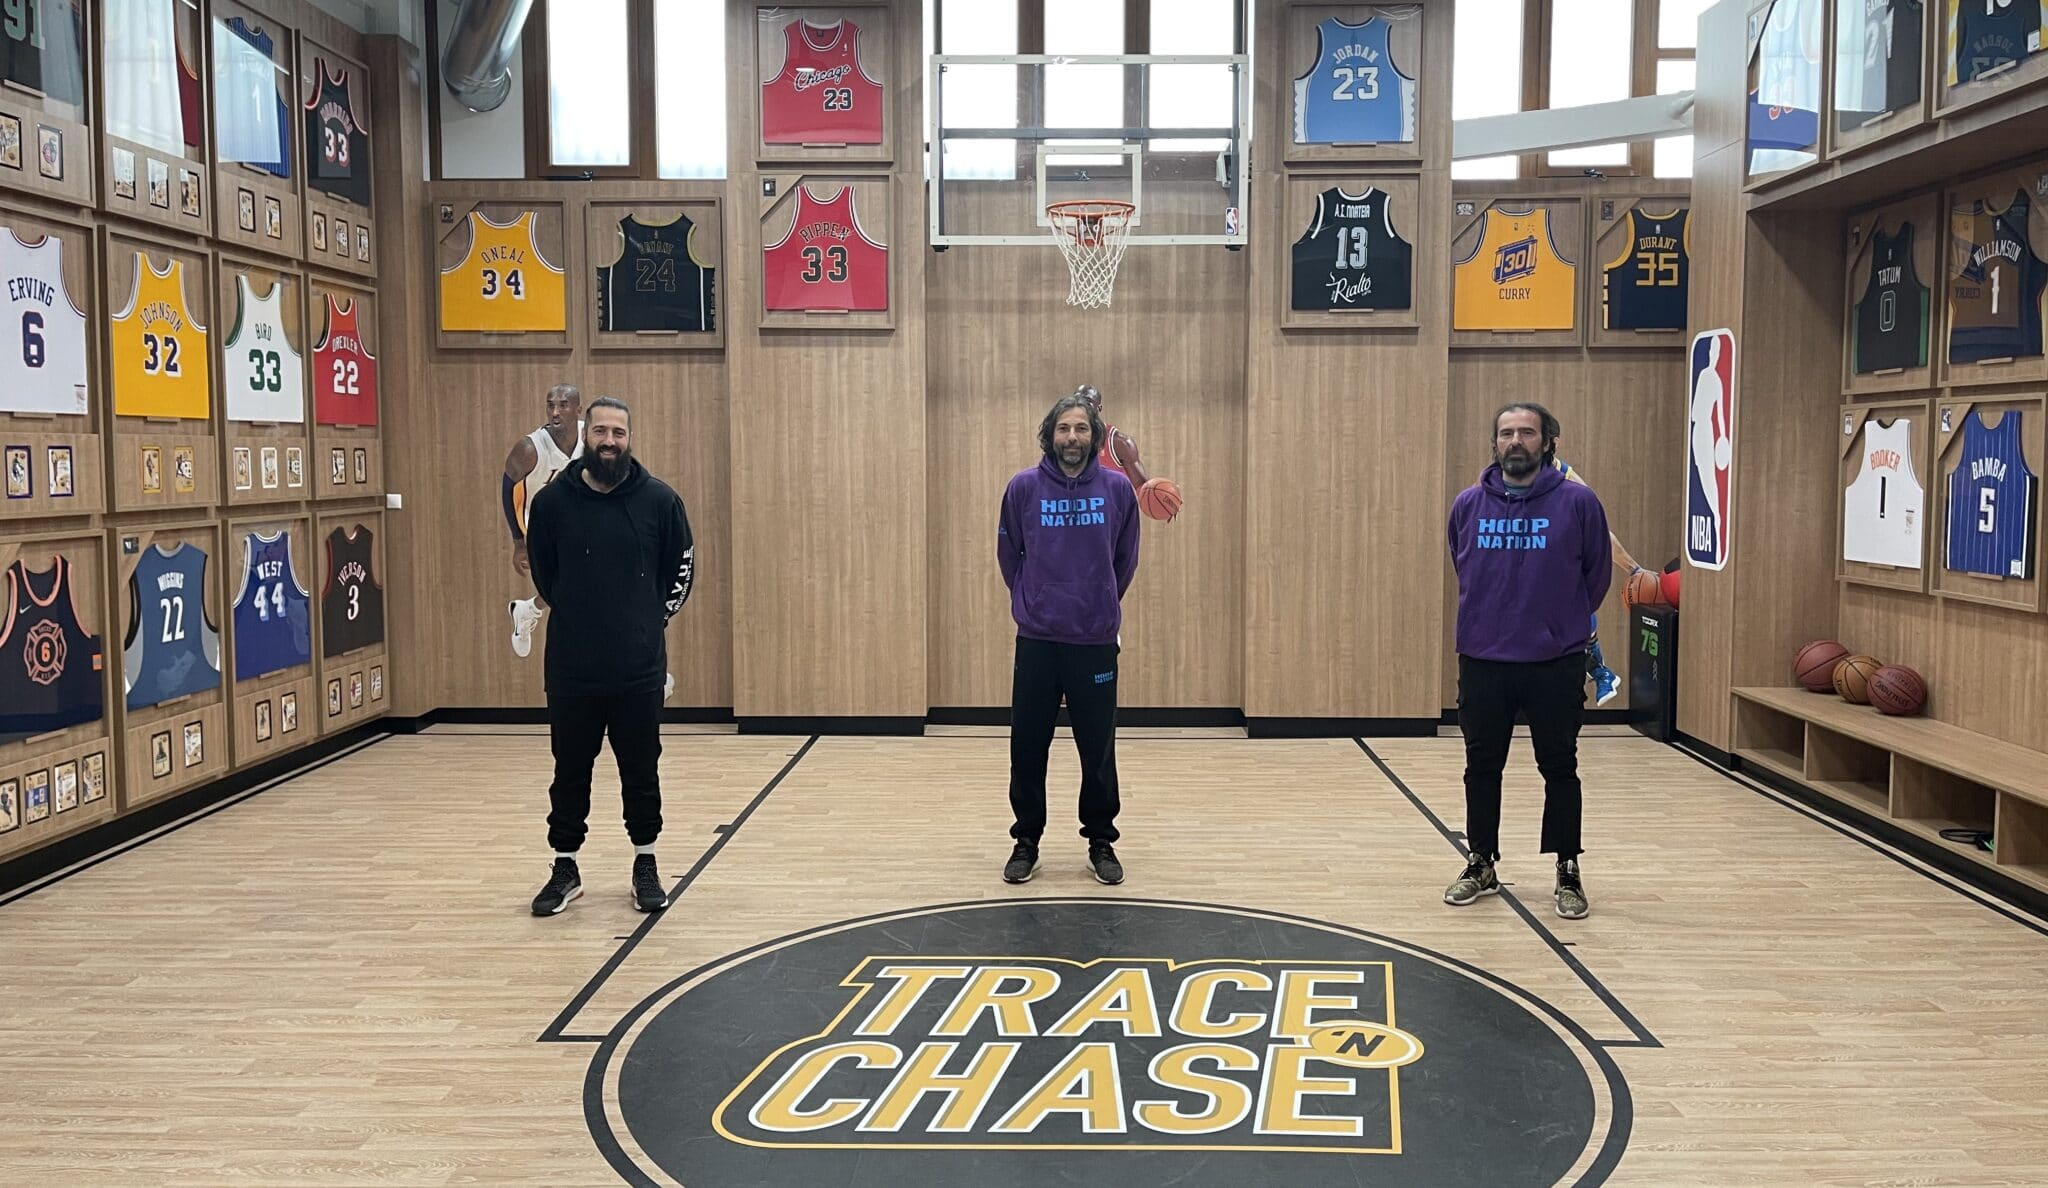 The Trace 'N Chase team welcomes EuroCup winner, Greek Champ and Greek Cup winner George Maslarinos